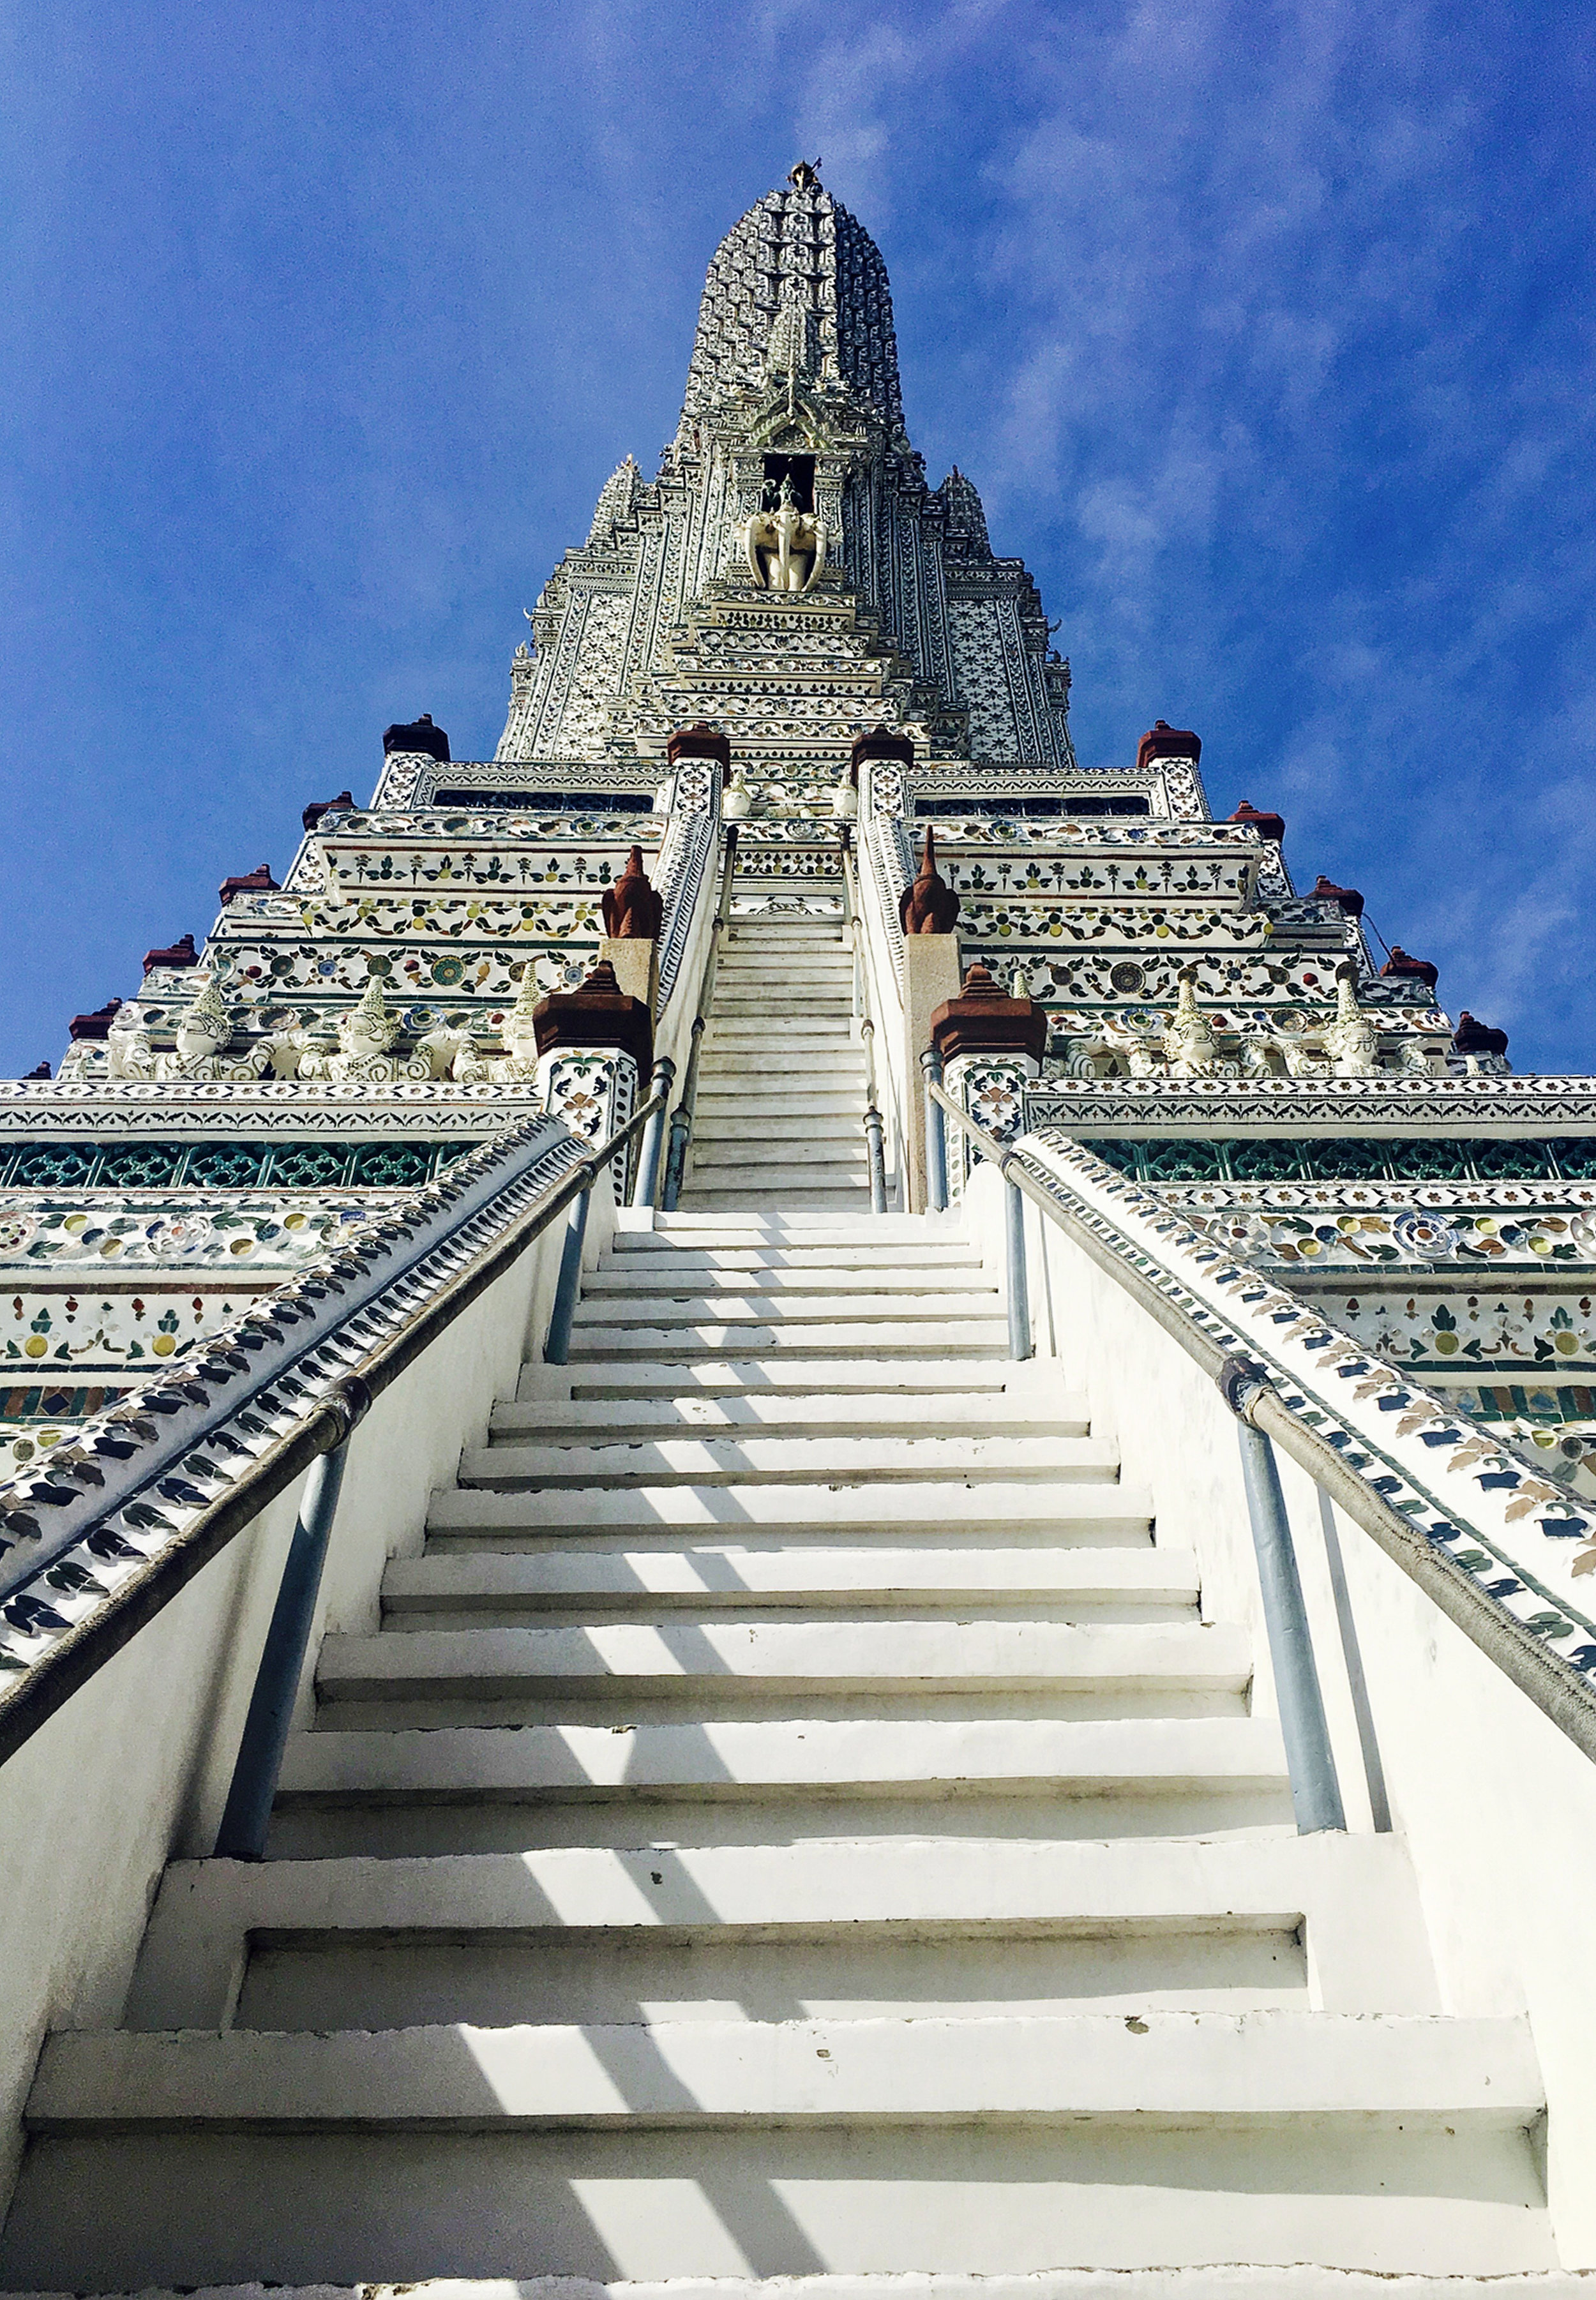 Upward view of Wat Arun showing the stairs